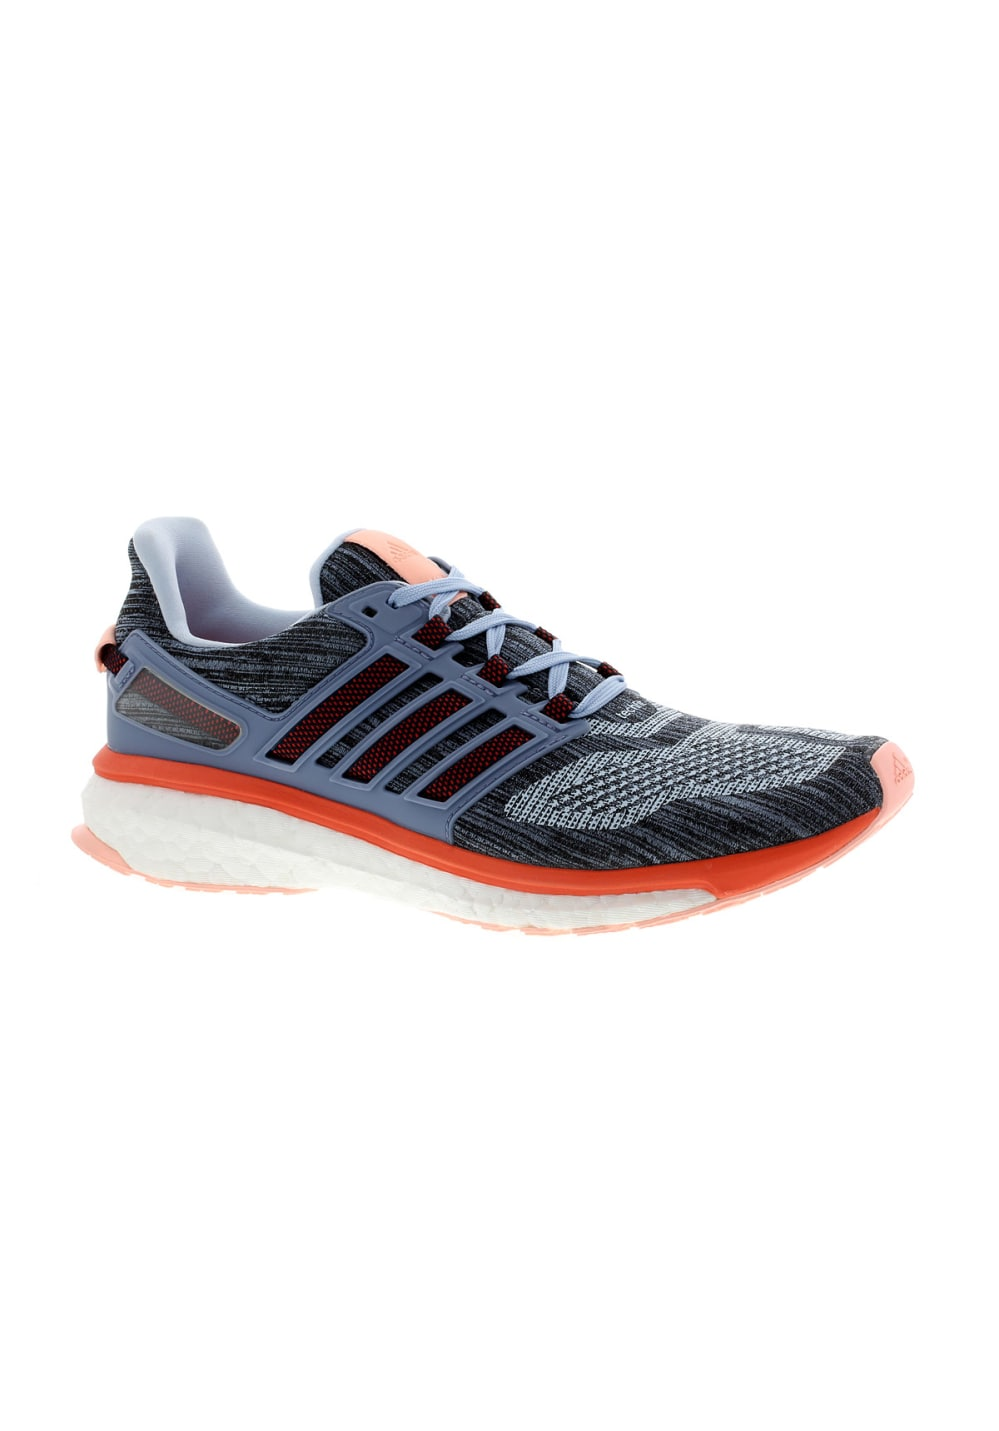 b70483e0d adidas Energy Boost 3 W - Running shoes for Women - Grey